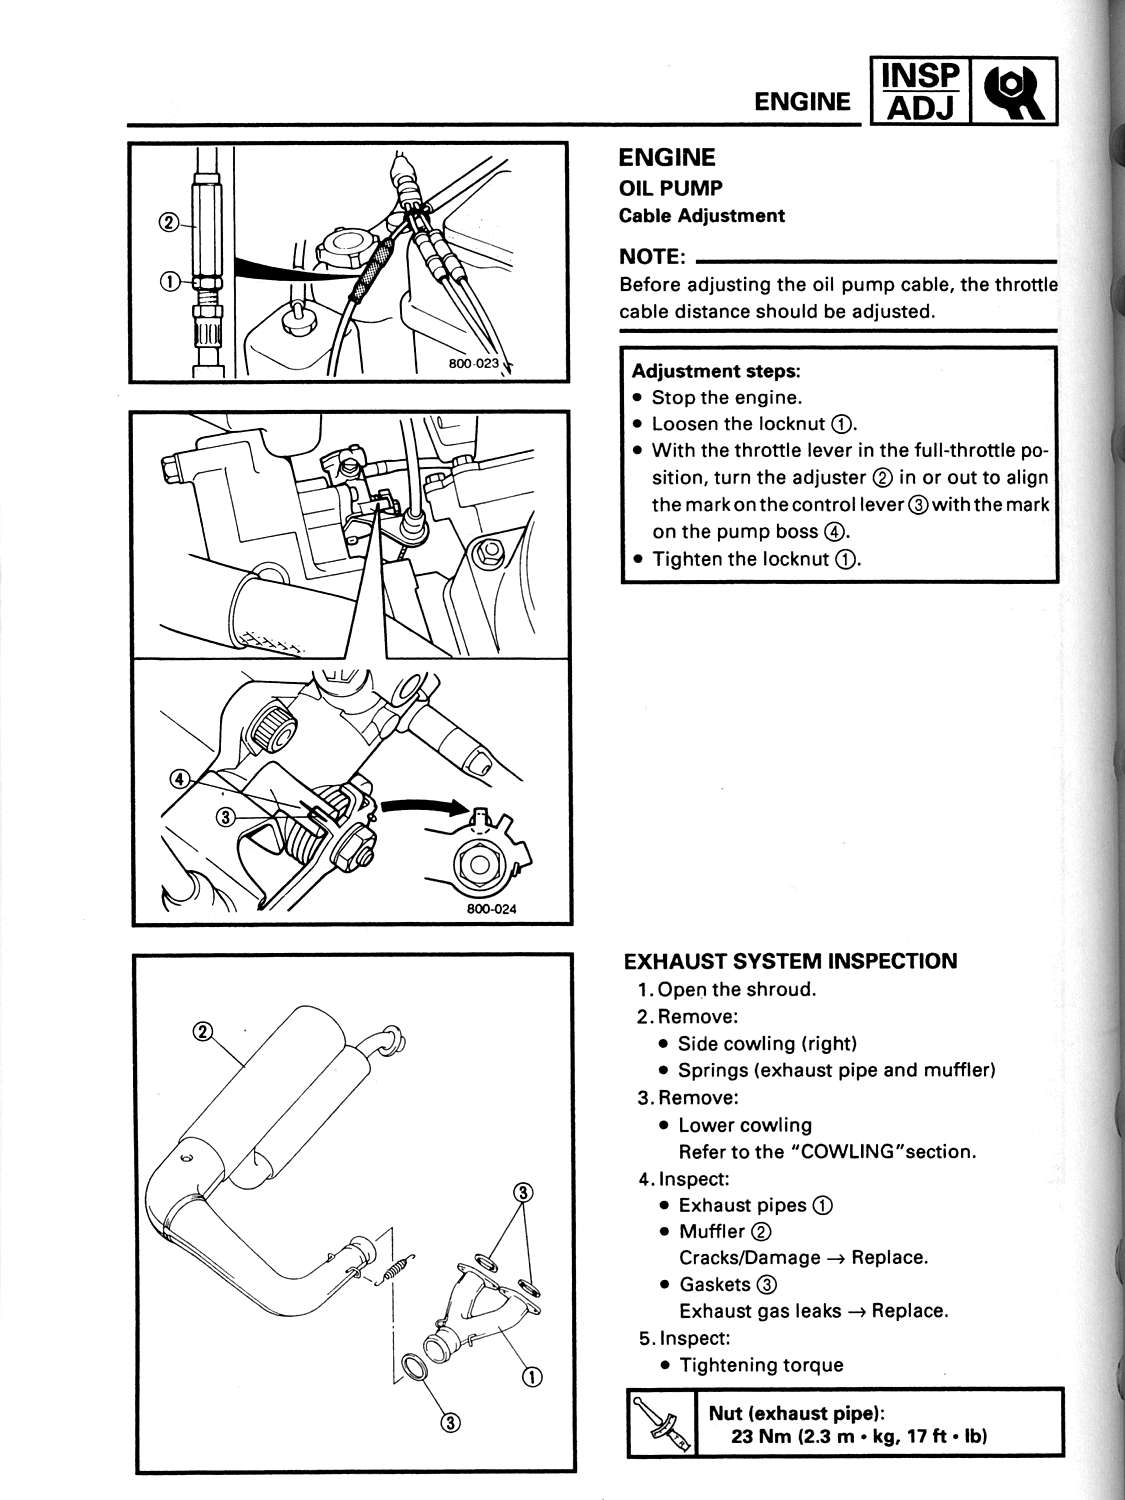 1996 yamaha royal star wiring diagram